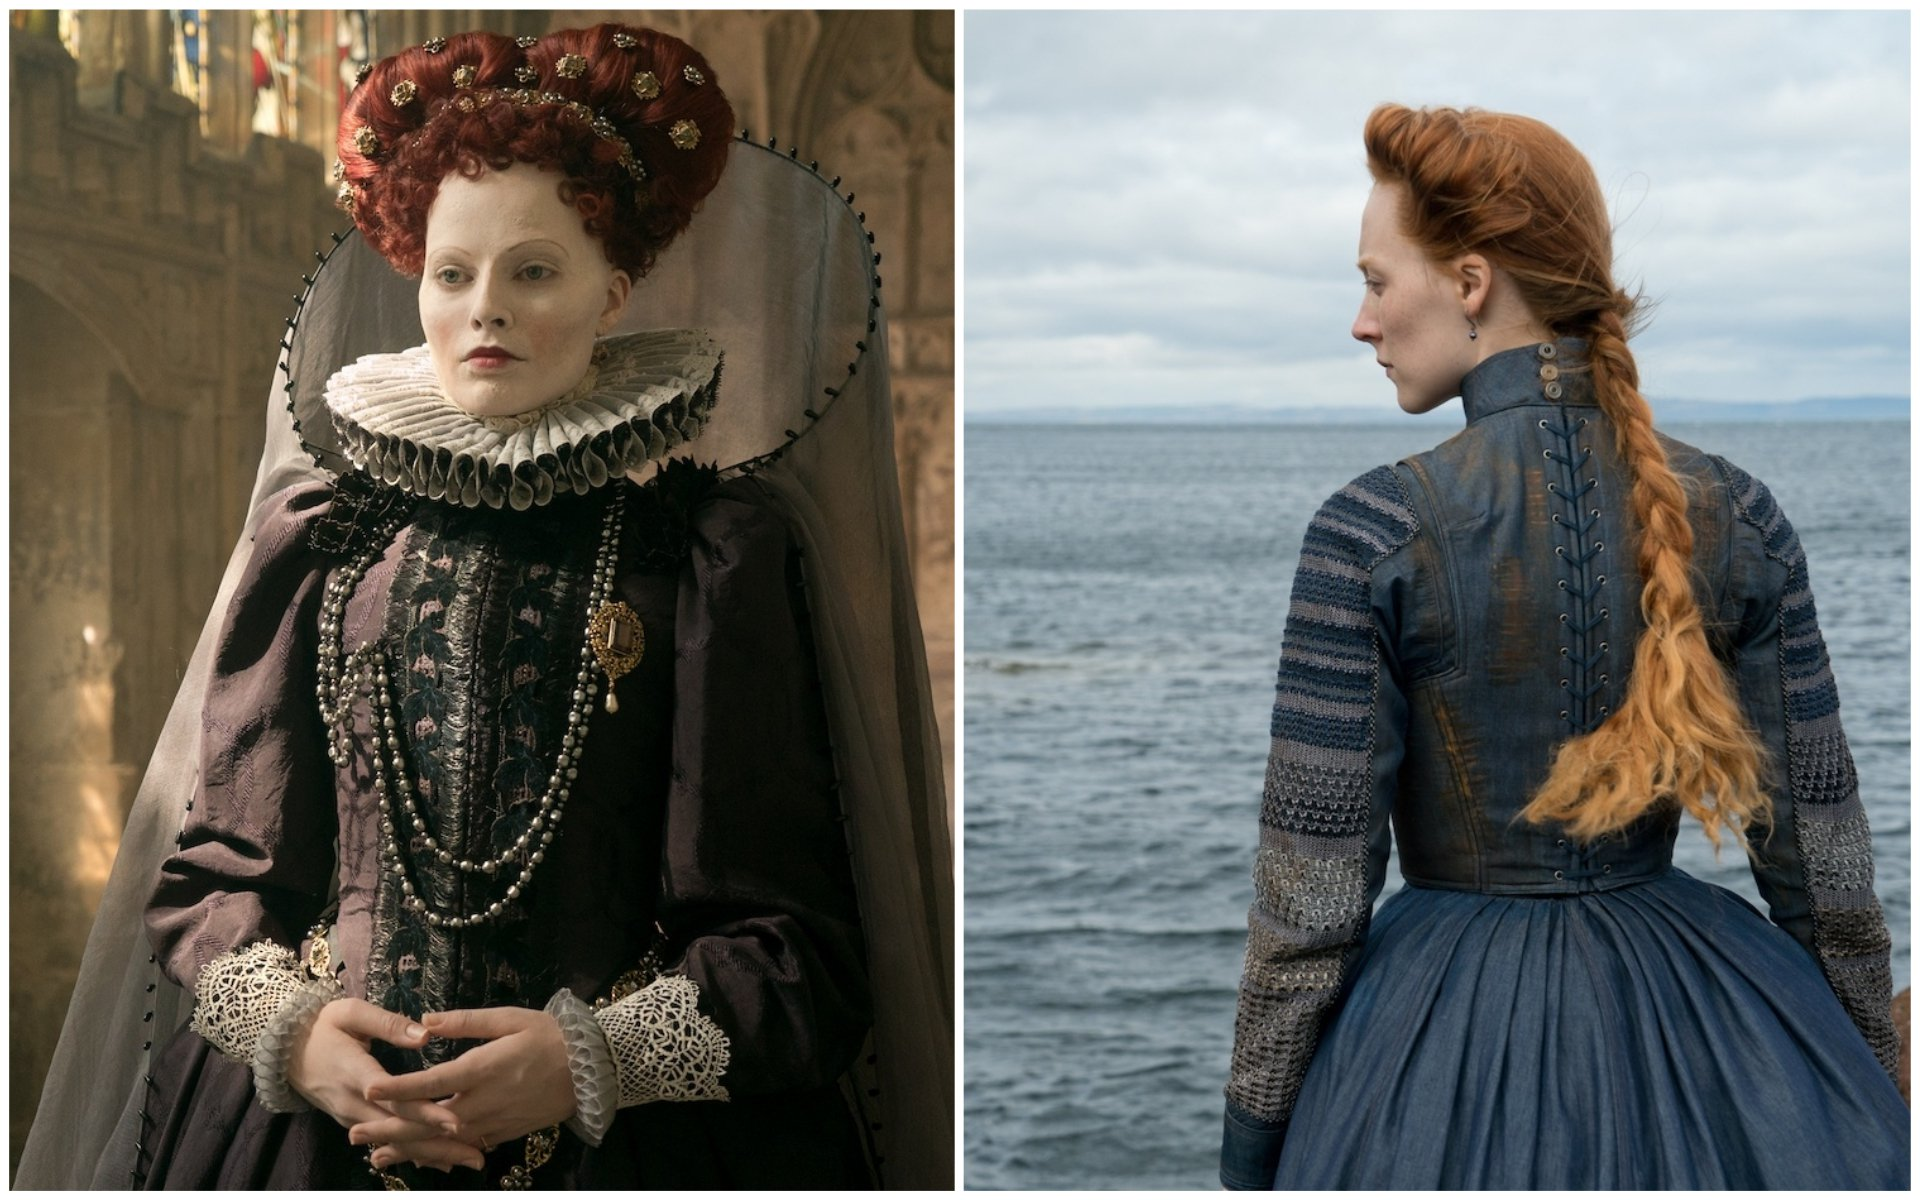 Caption: Mary Queen of Scots, Credit: Focus Features